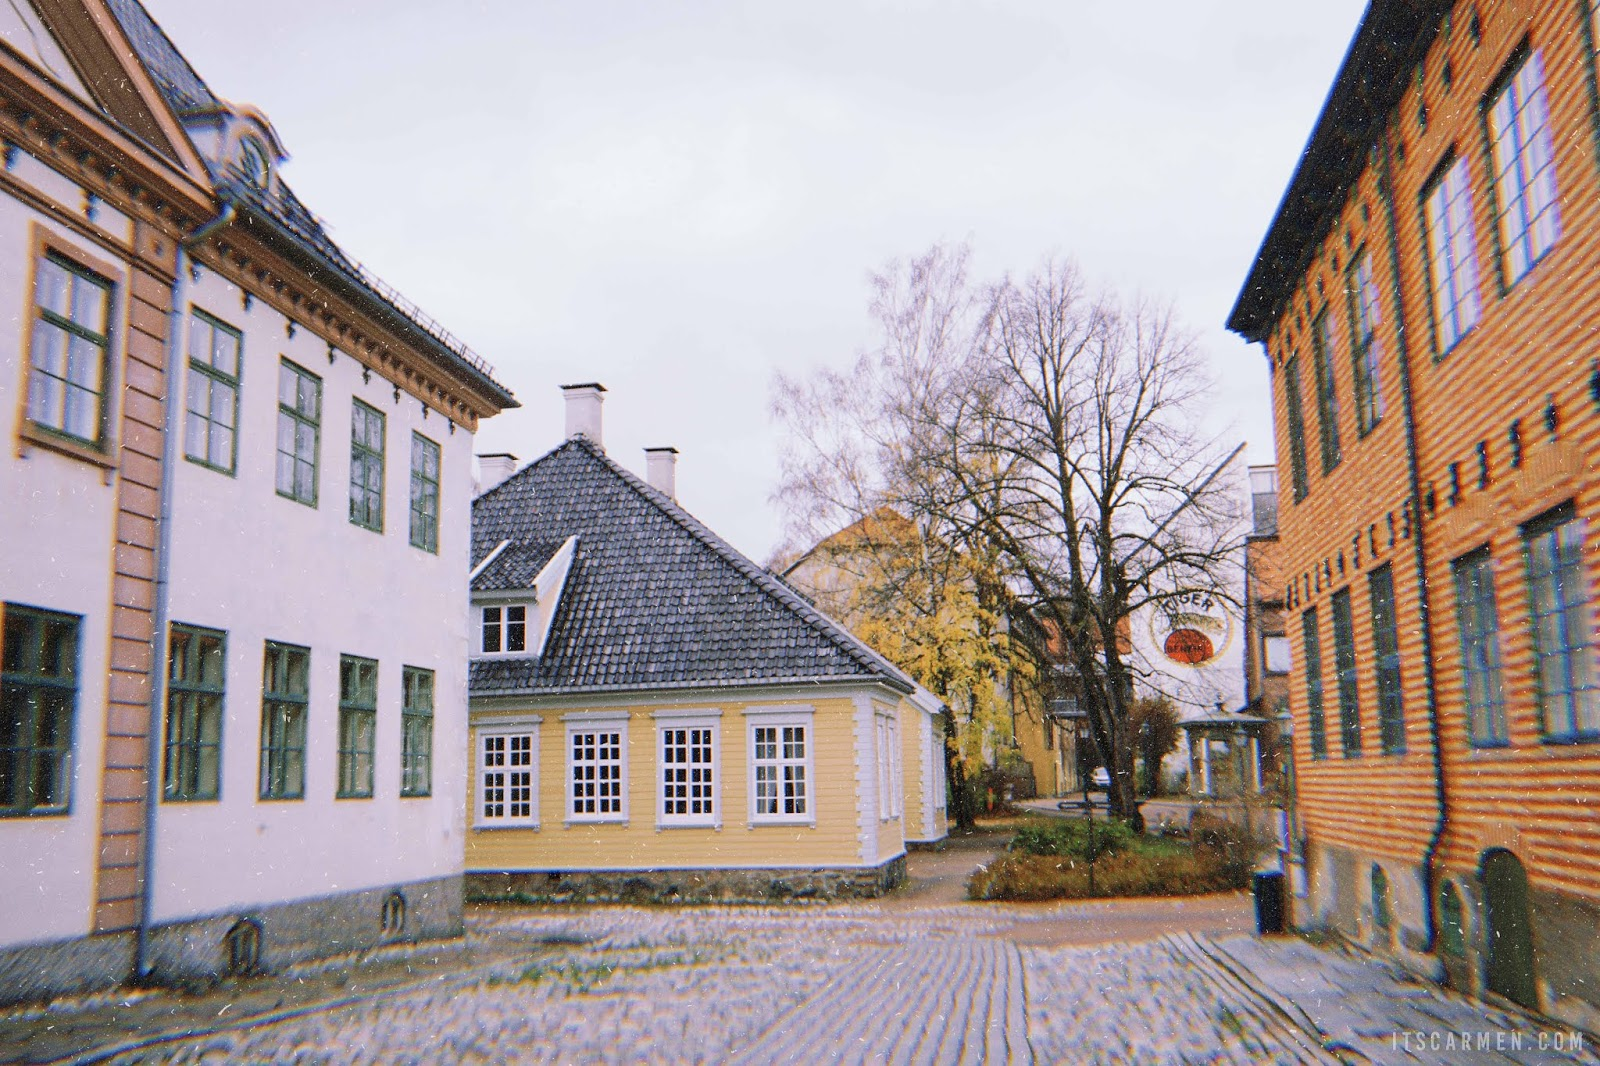 Oslo, Norway's cutest thing to do is the Open Air Museum